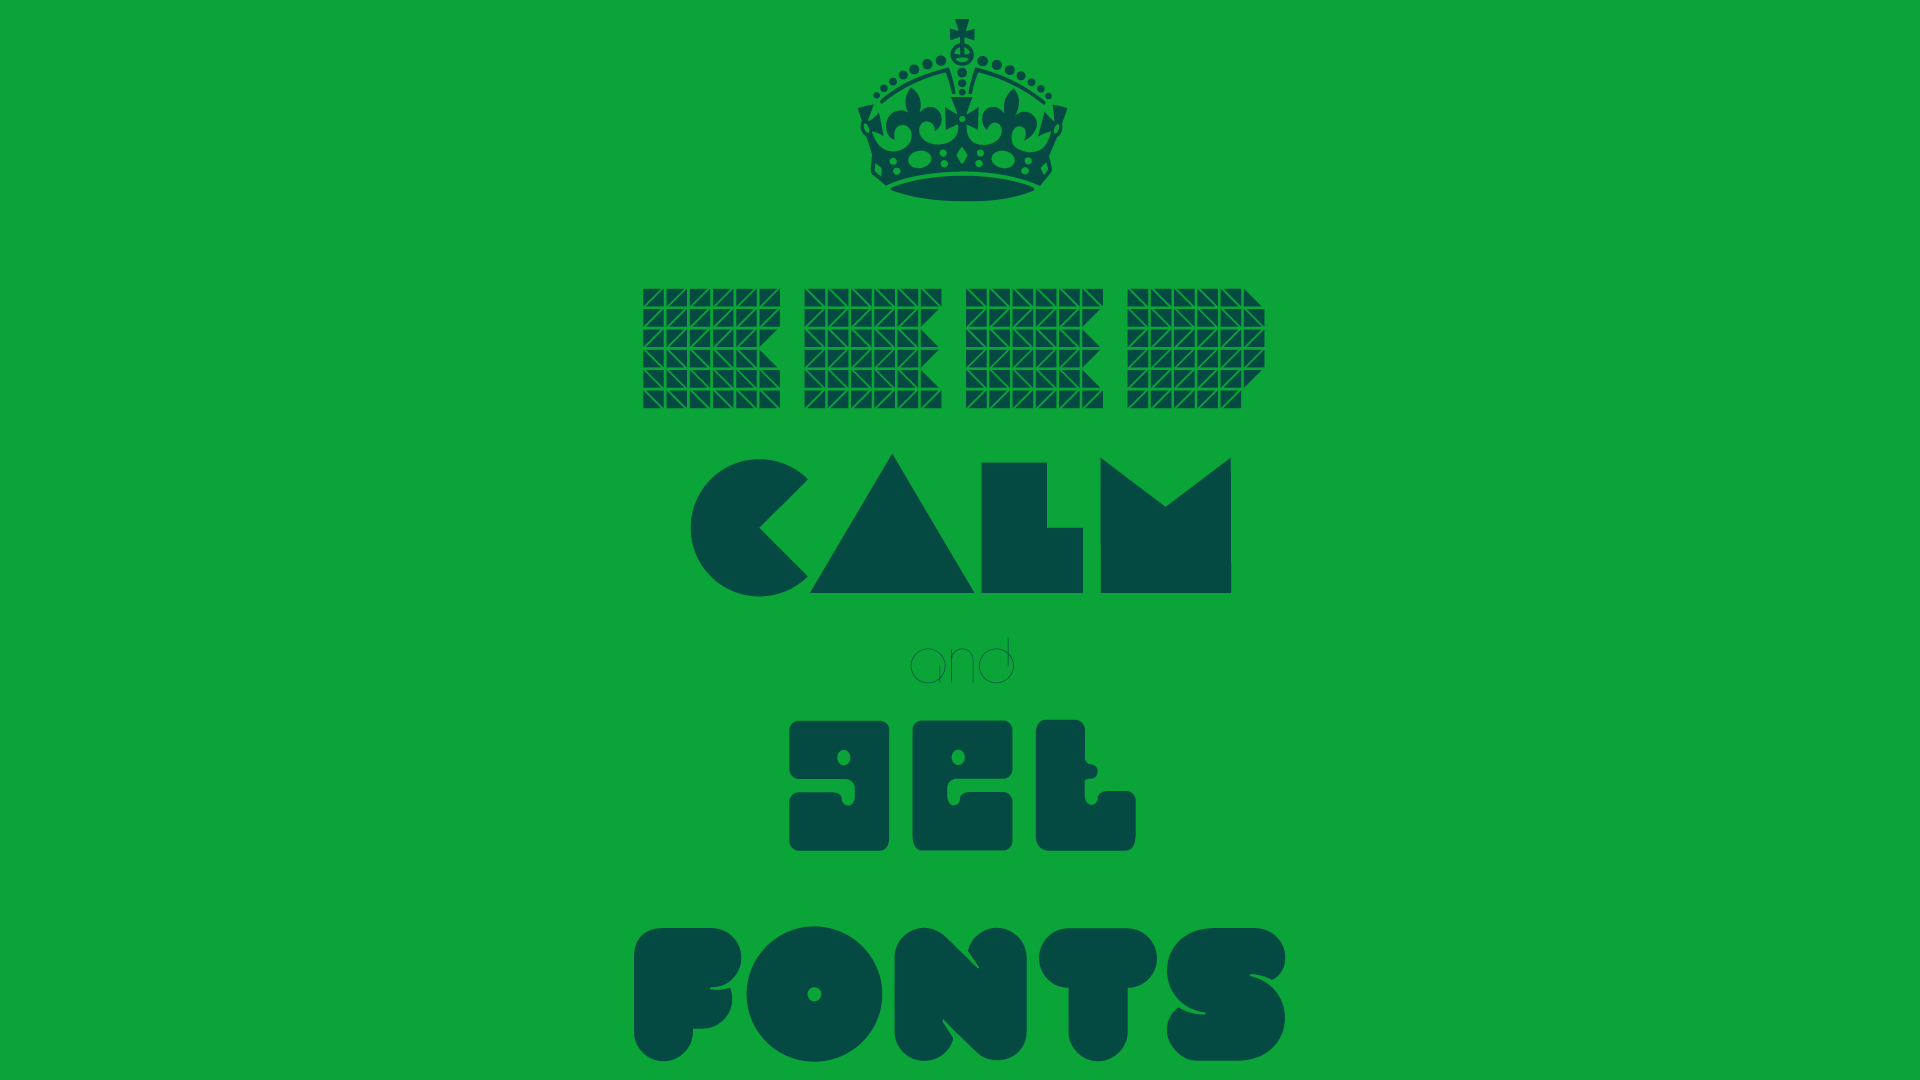 Keep calm and get fonts by ju43 on deviantart for Keep calm font download